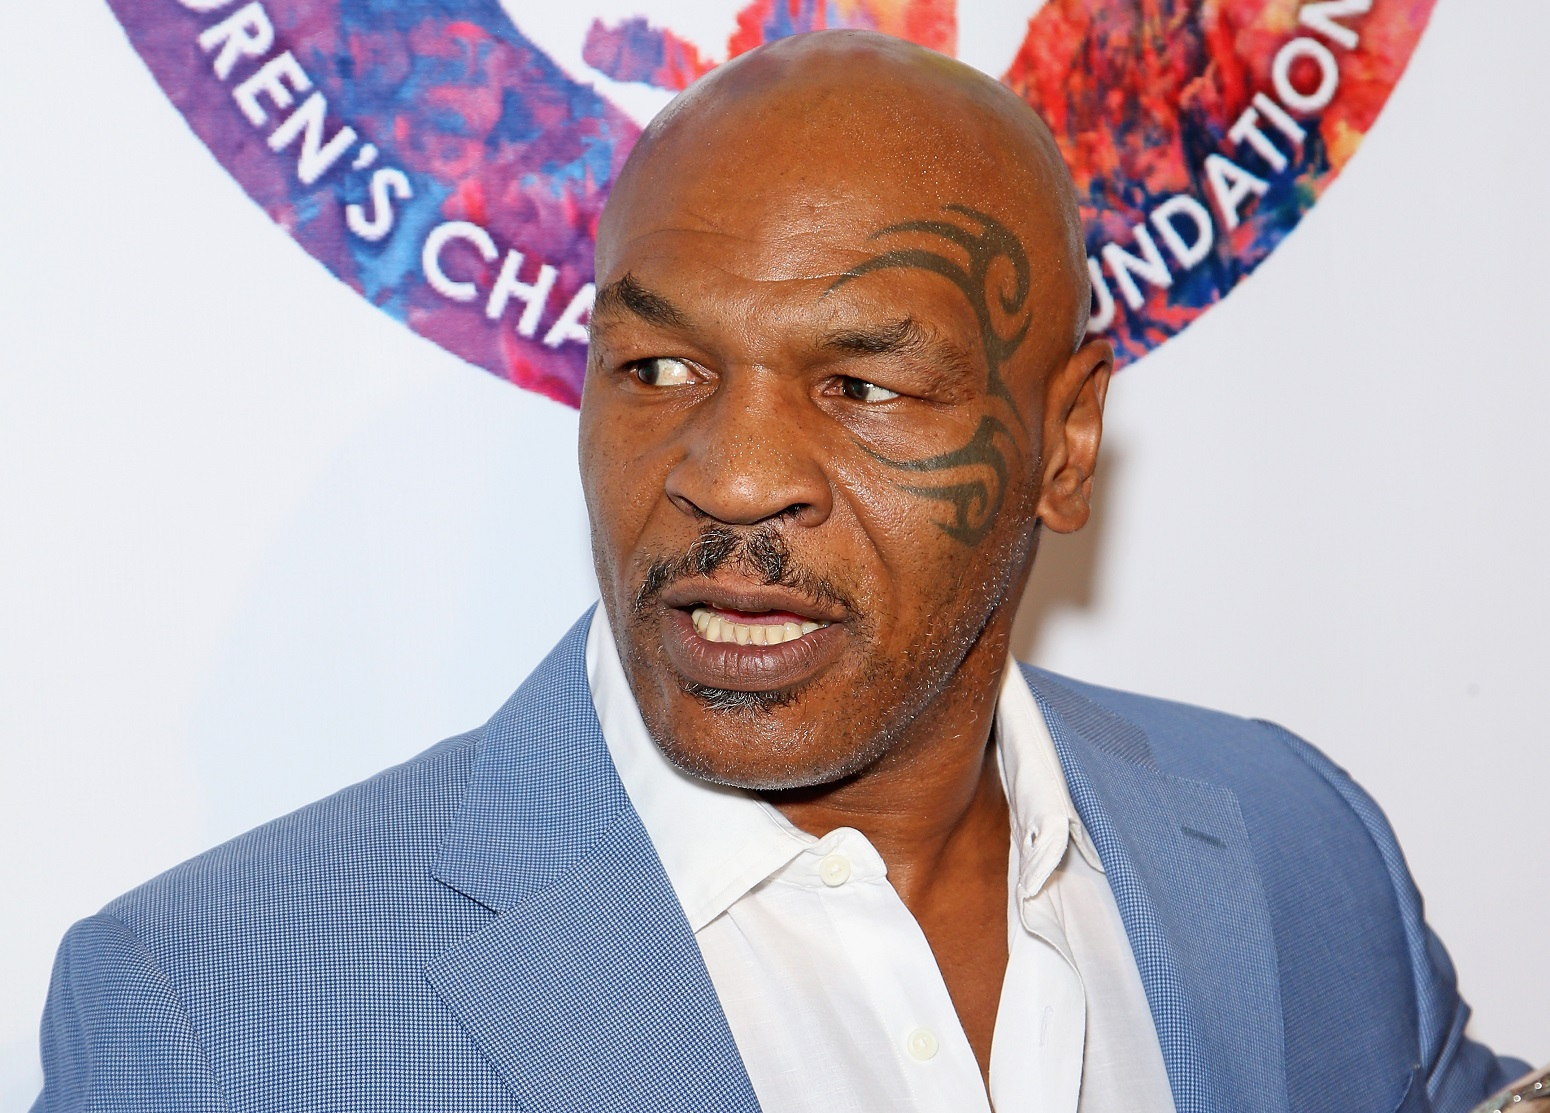 Mike Tyson comeback fight drug testing interesting detail